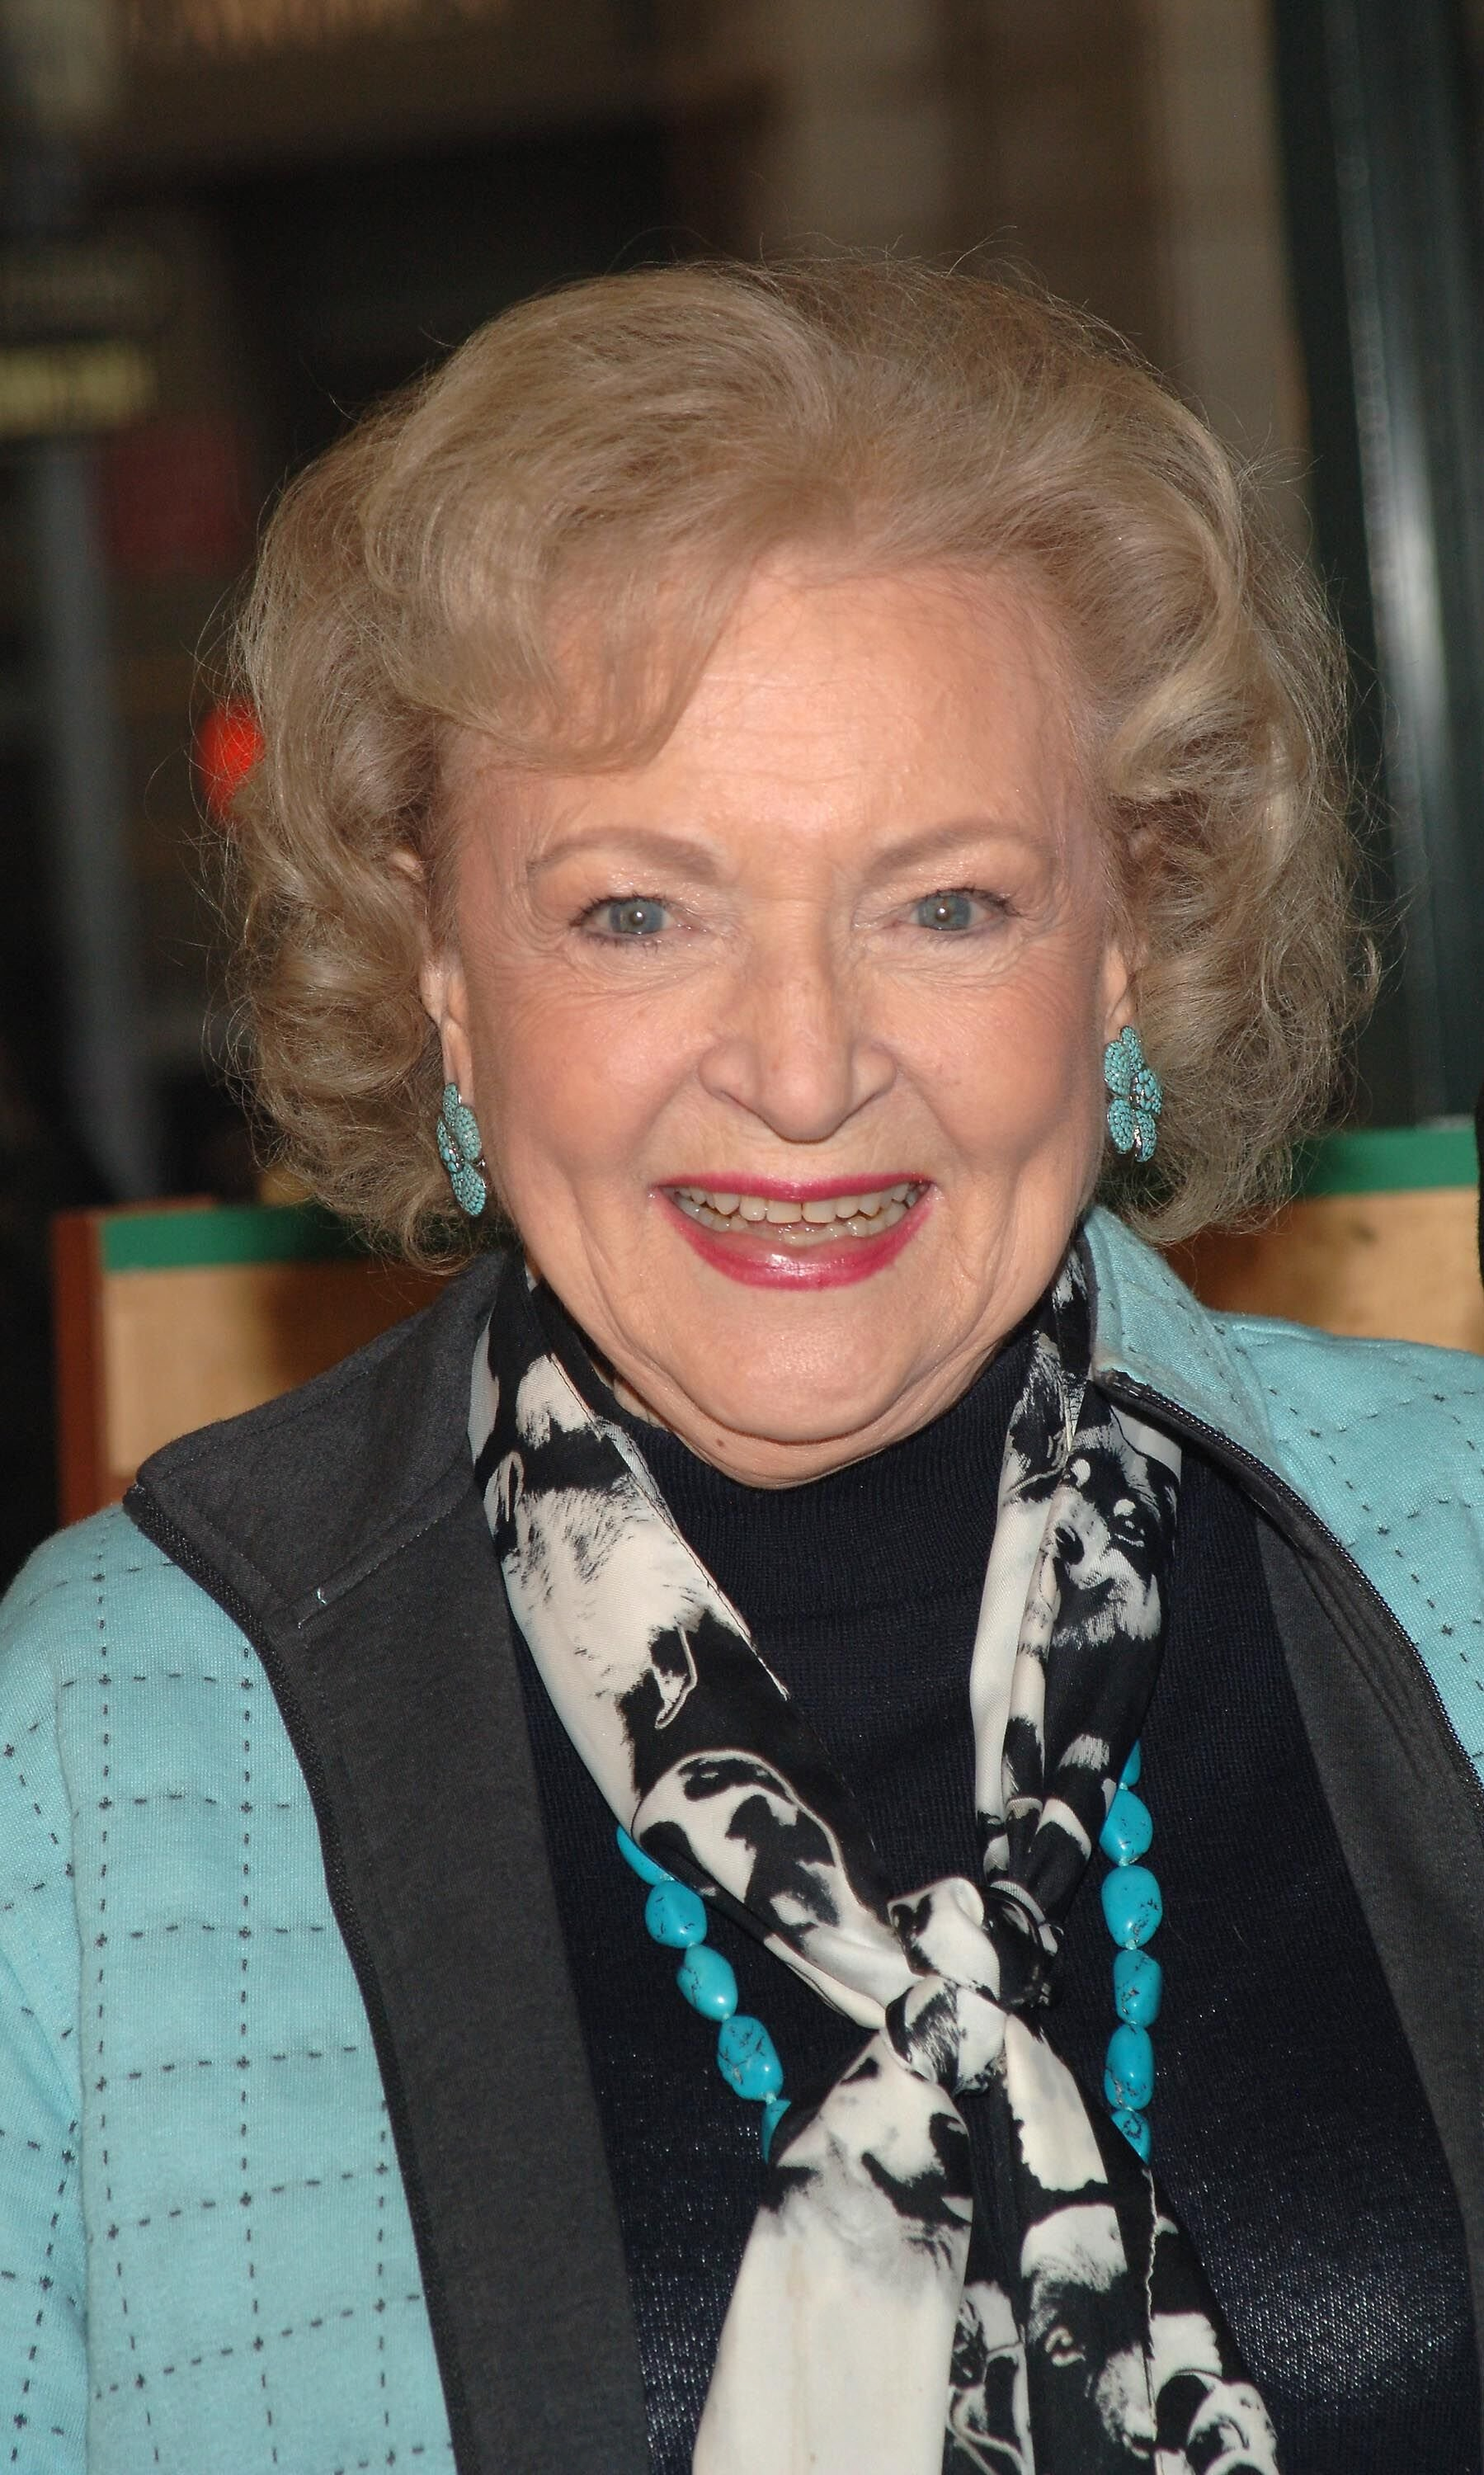 Betty White / Source: Getty Images